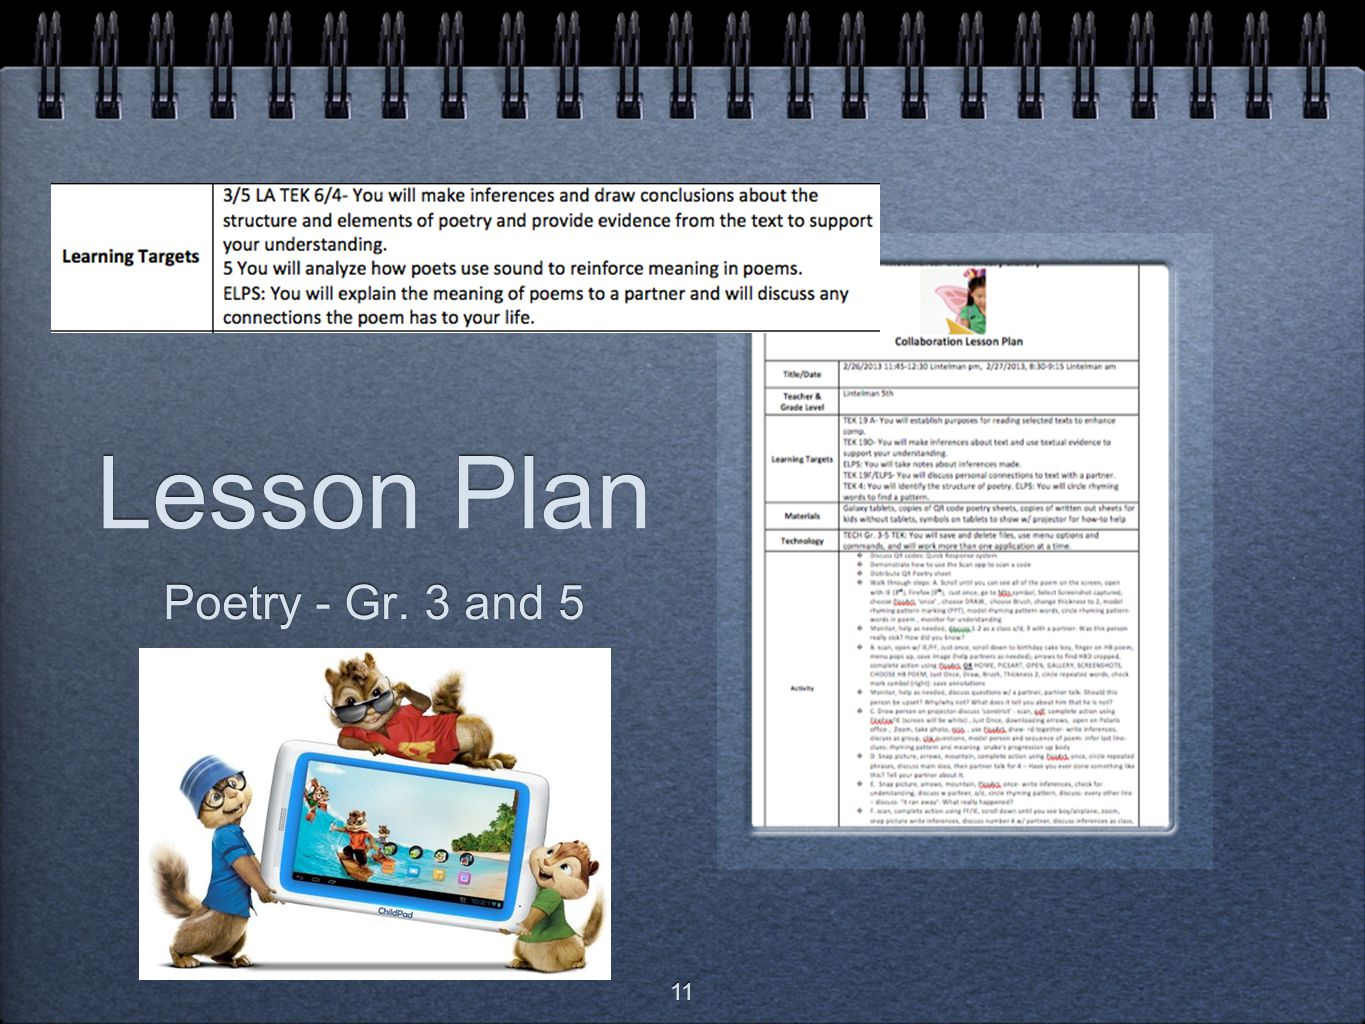 Lesson Plan Poetry - Gr. 3 and 5